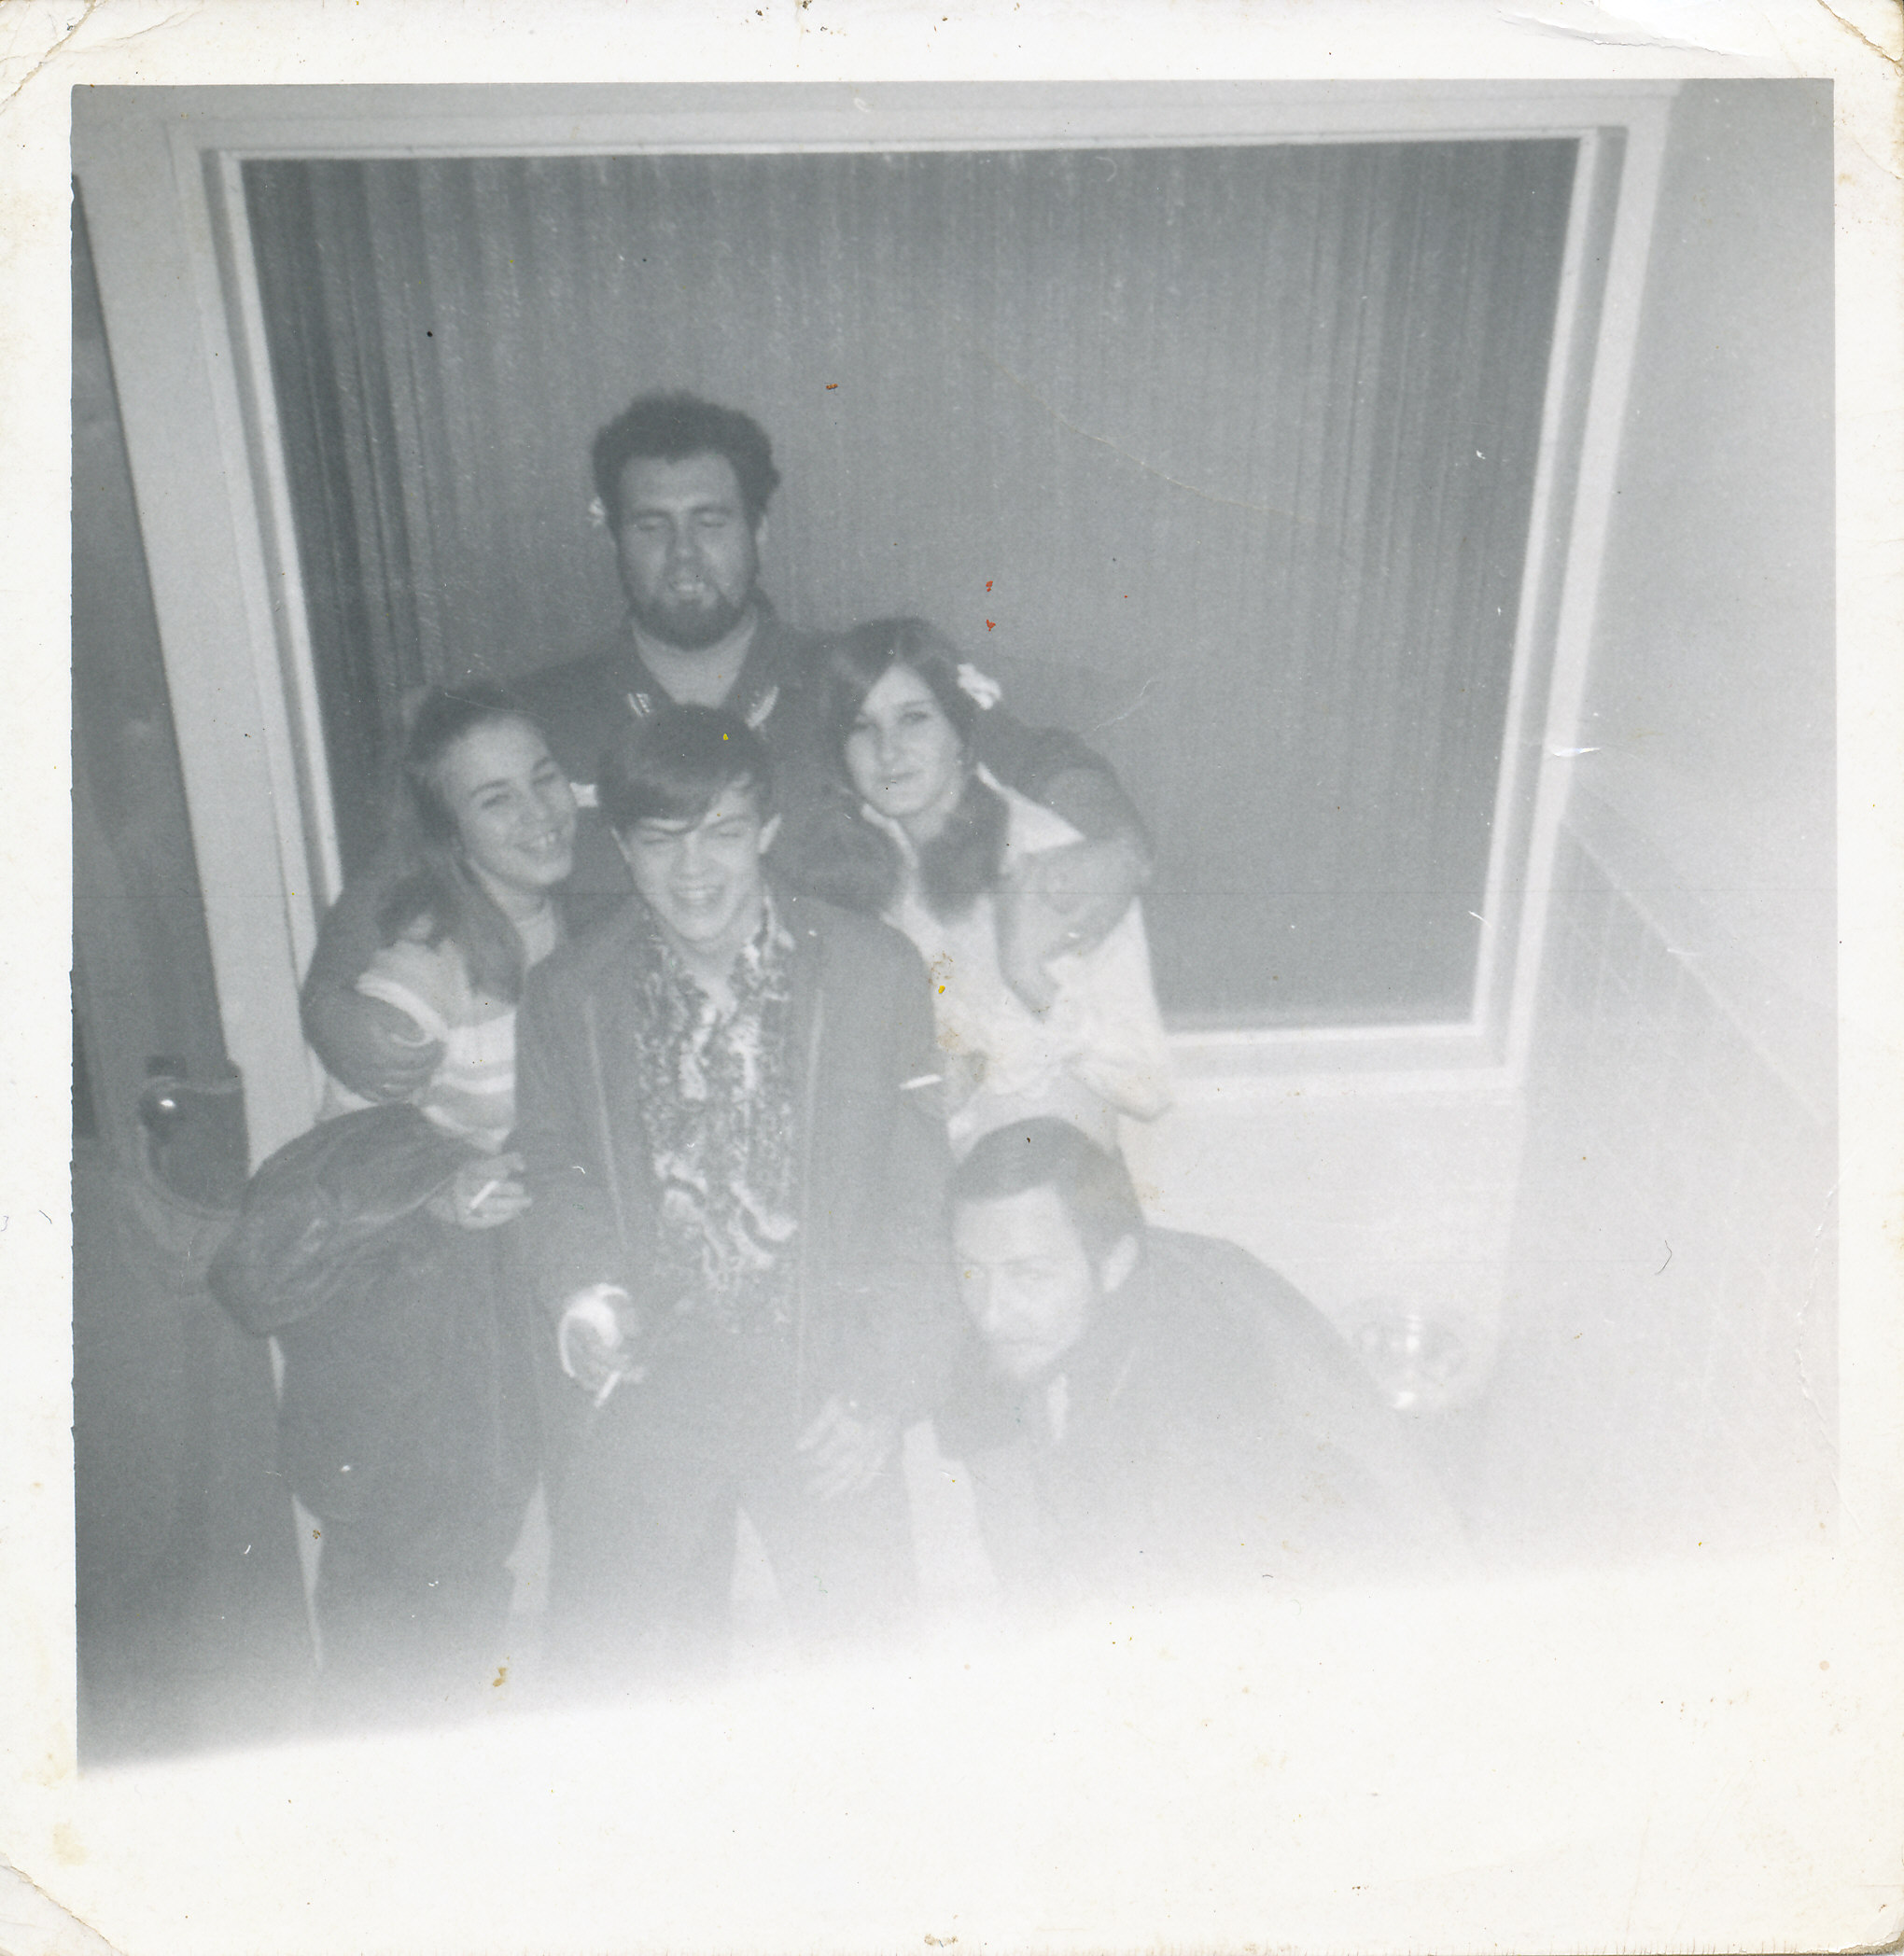 group shot of 2 young girls, one young boy and 2 older young men